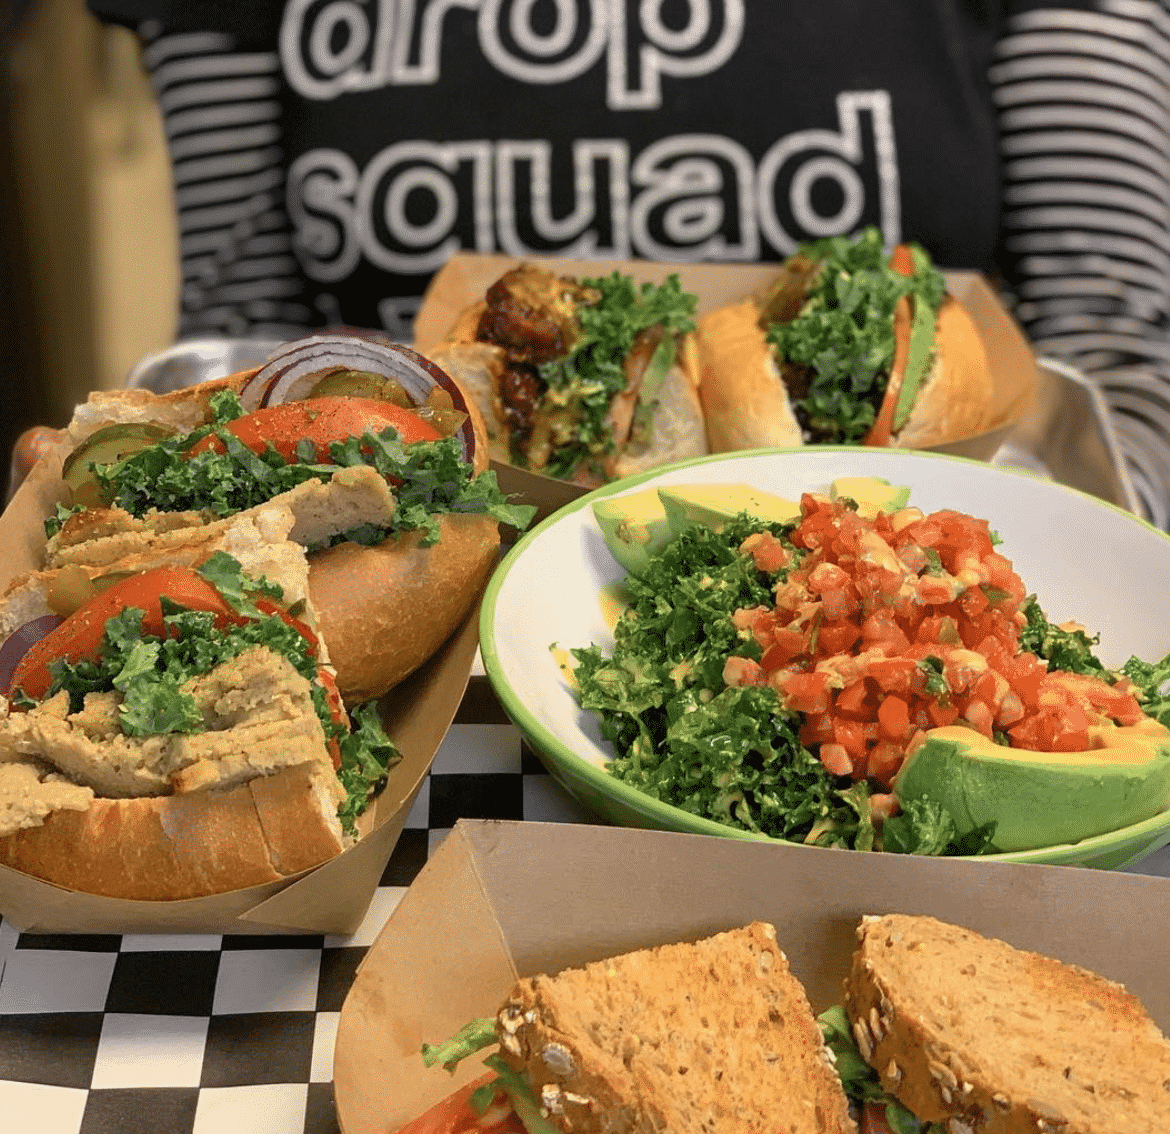 Drop Squad Kitchen Vegan